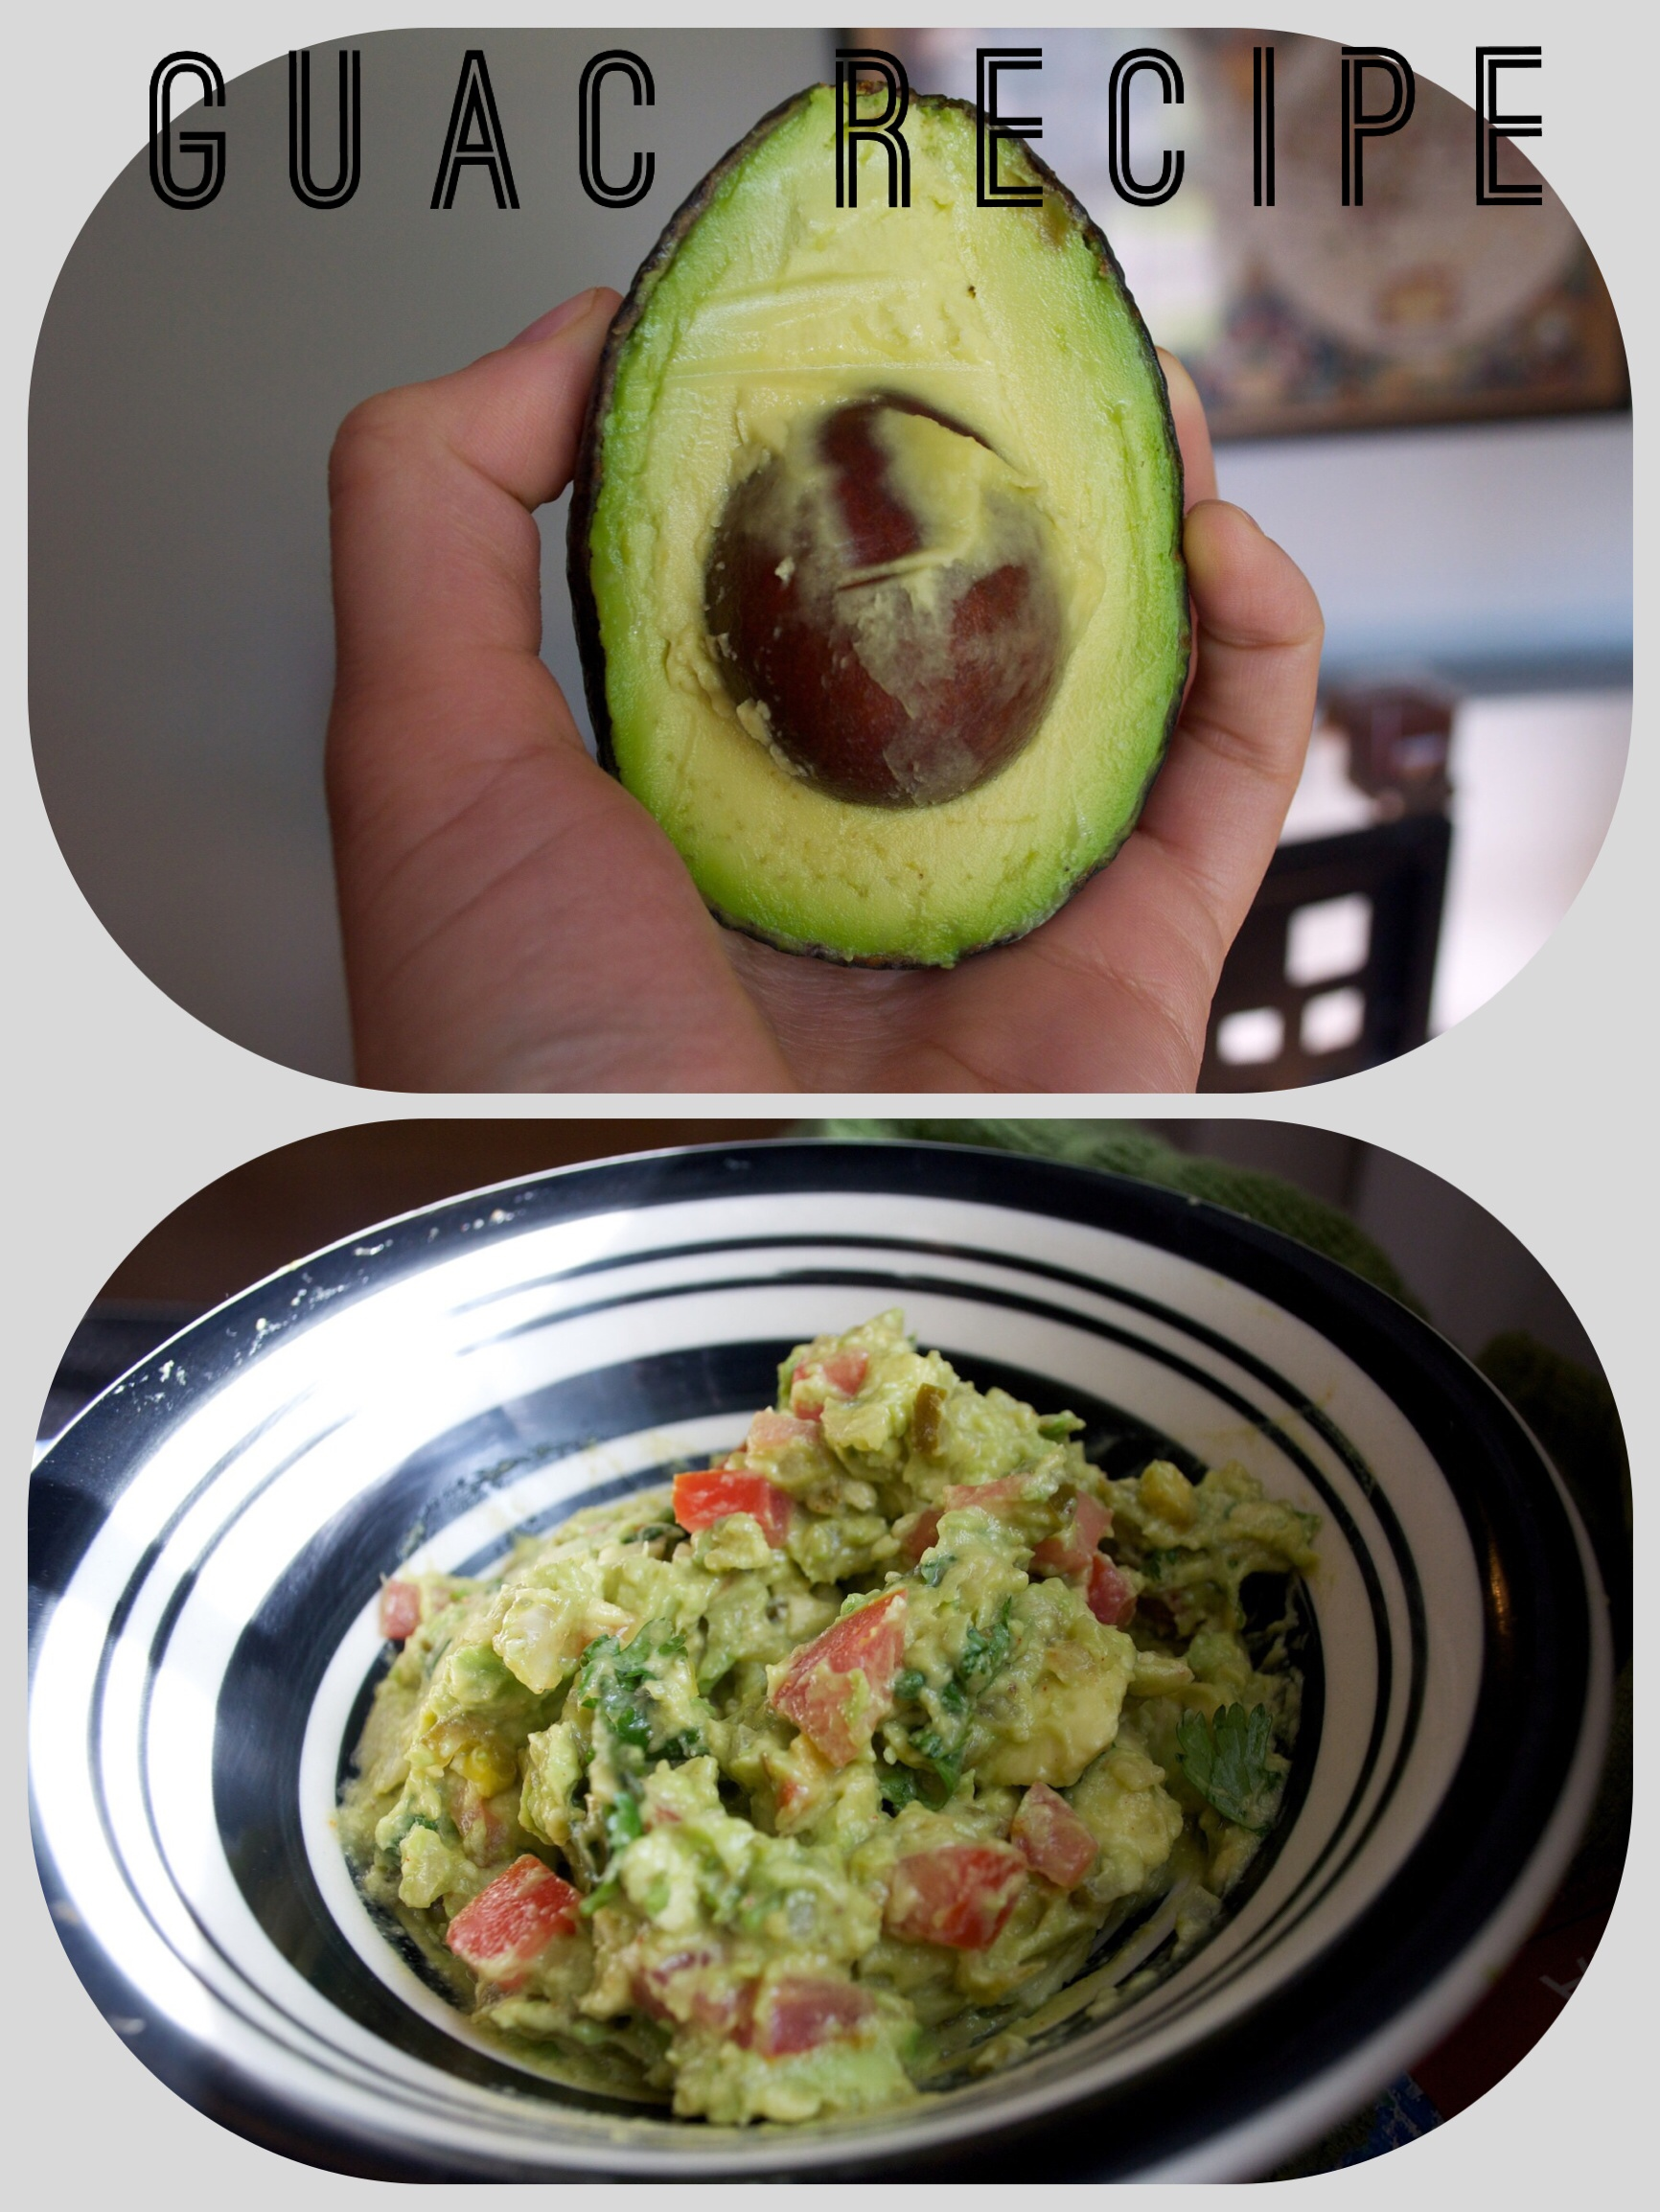 Pit and guac